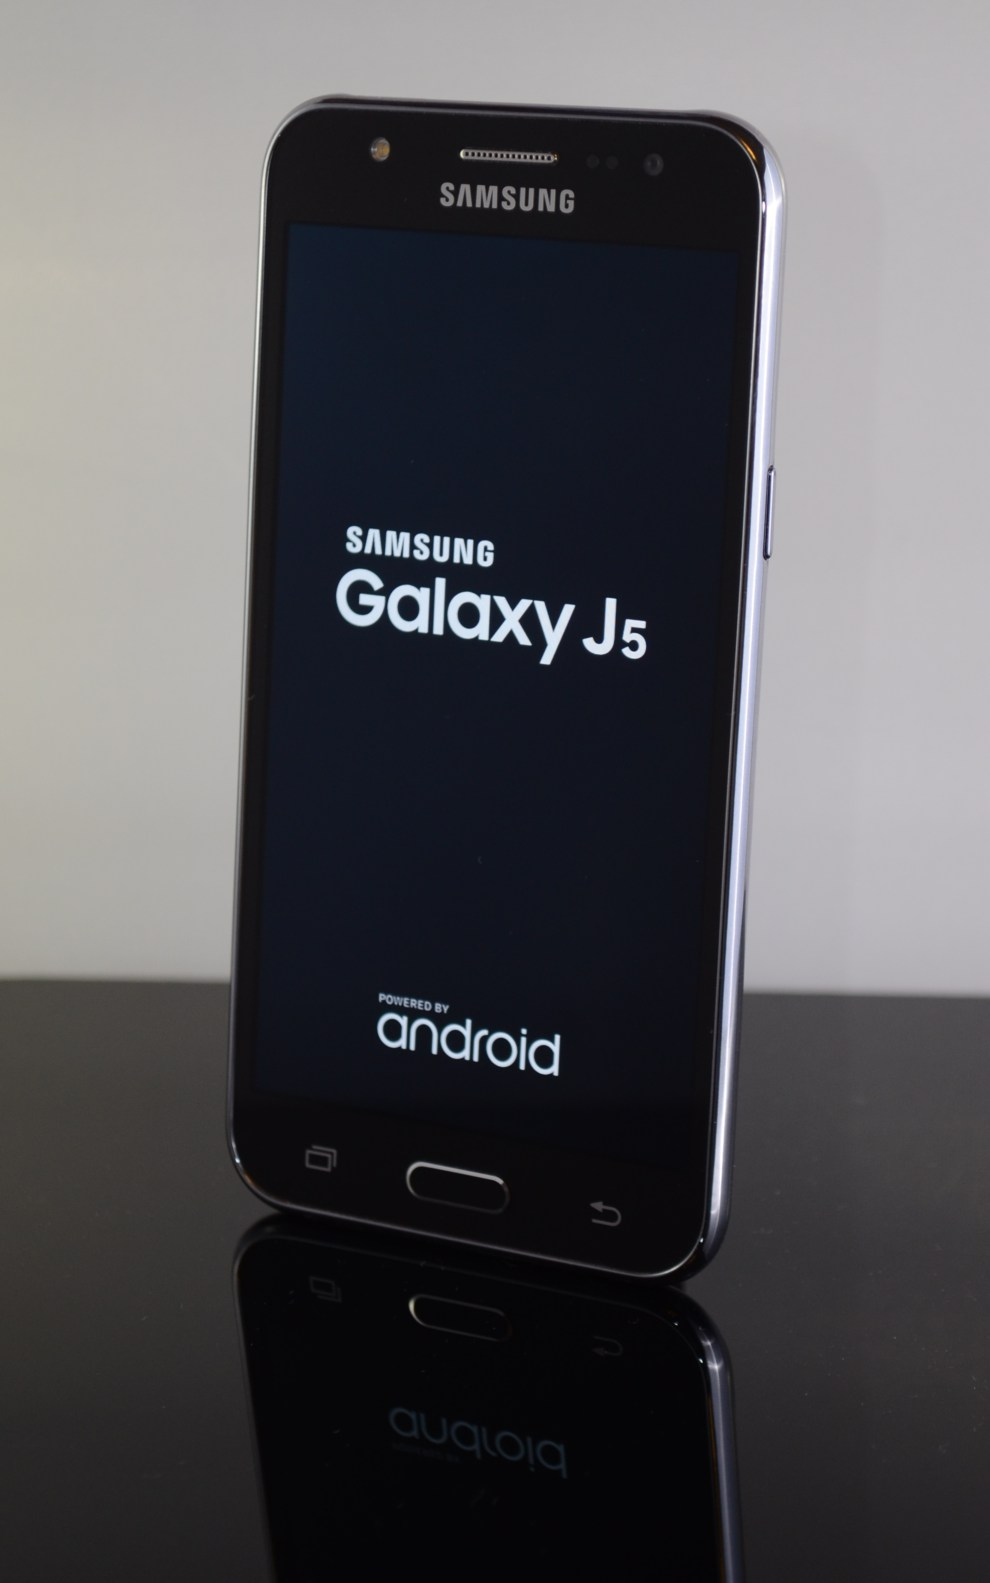 Leaks Of Samsung 's New Phablet: Galaxy J Max